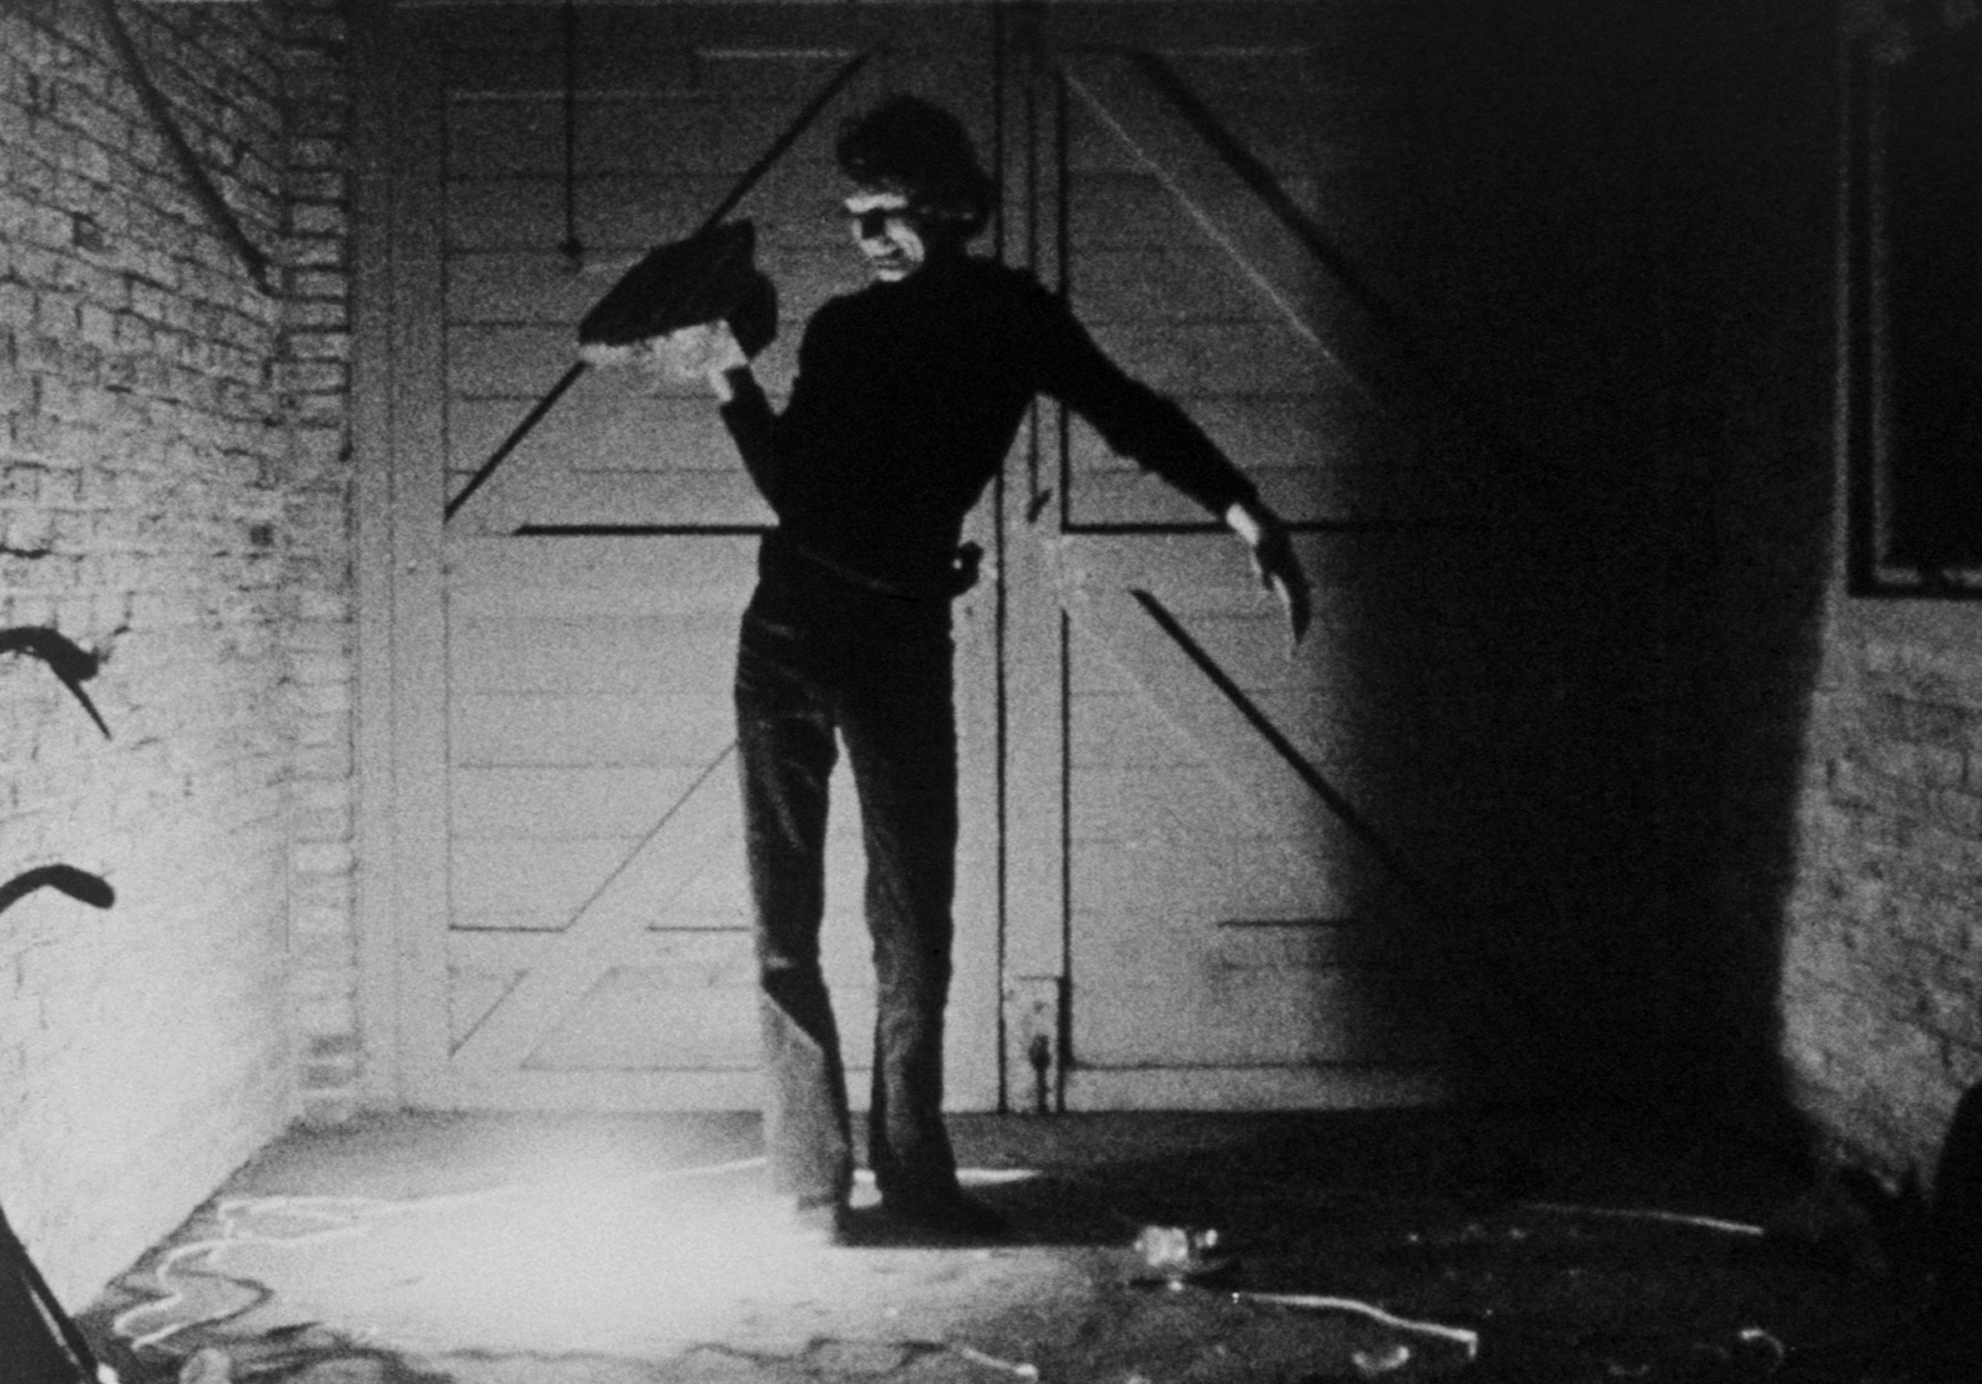 Still from black and white film